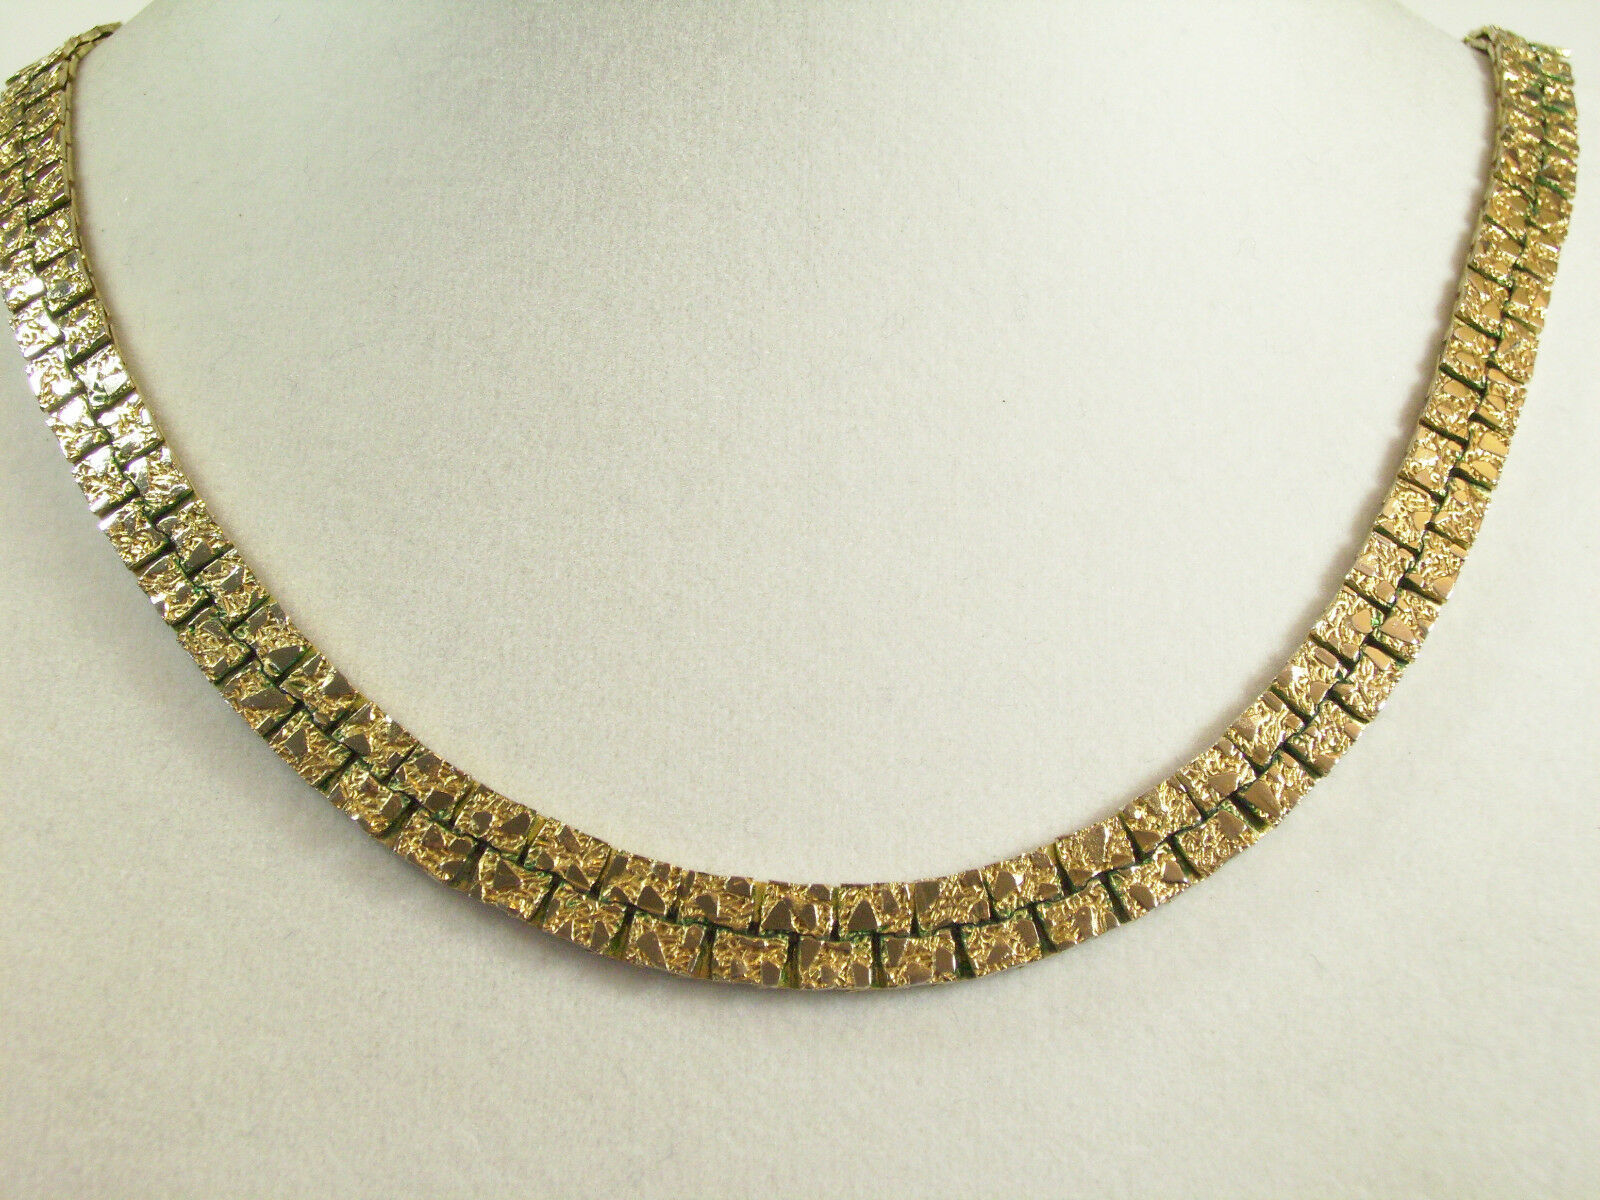 Gold NUGGET Style Link Necklace Plated Chain Vintage Classic Office Career image 3